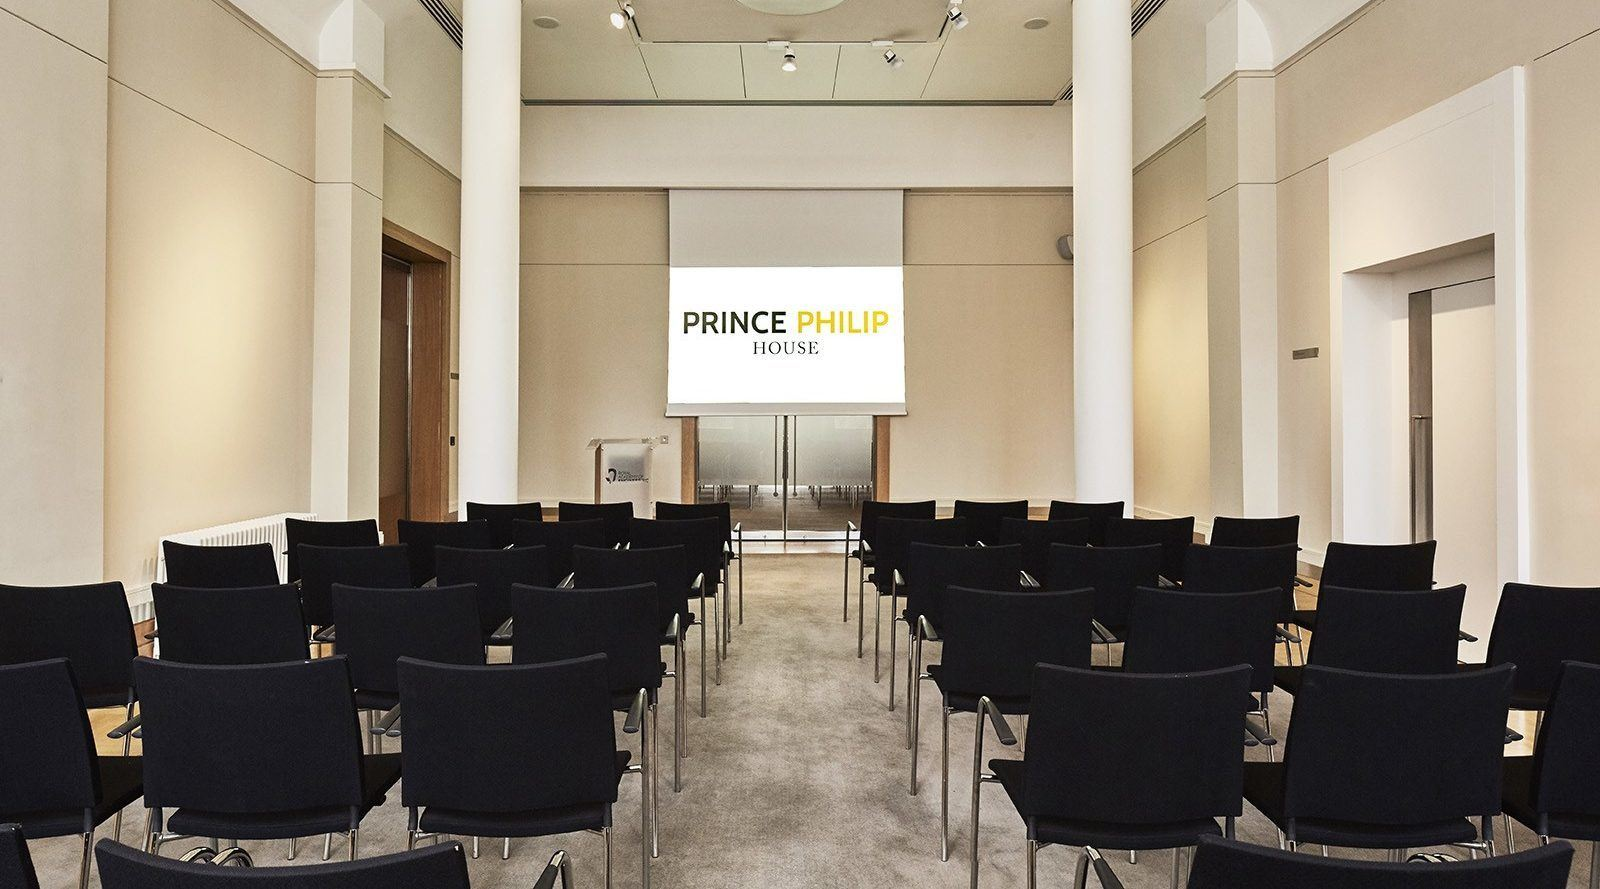 Prince Phillip House London venue interior